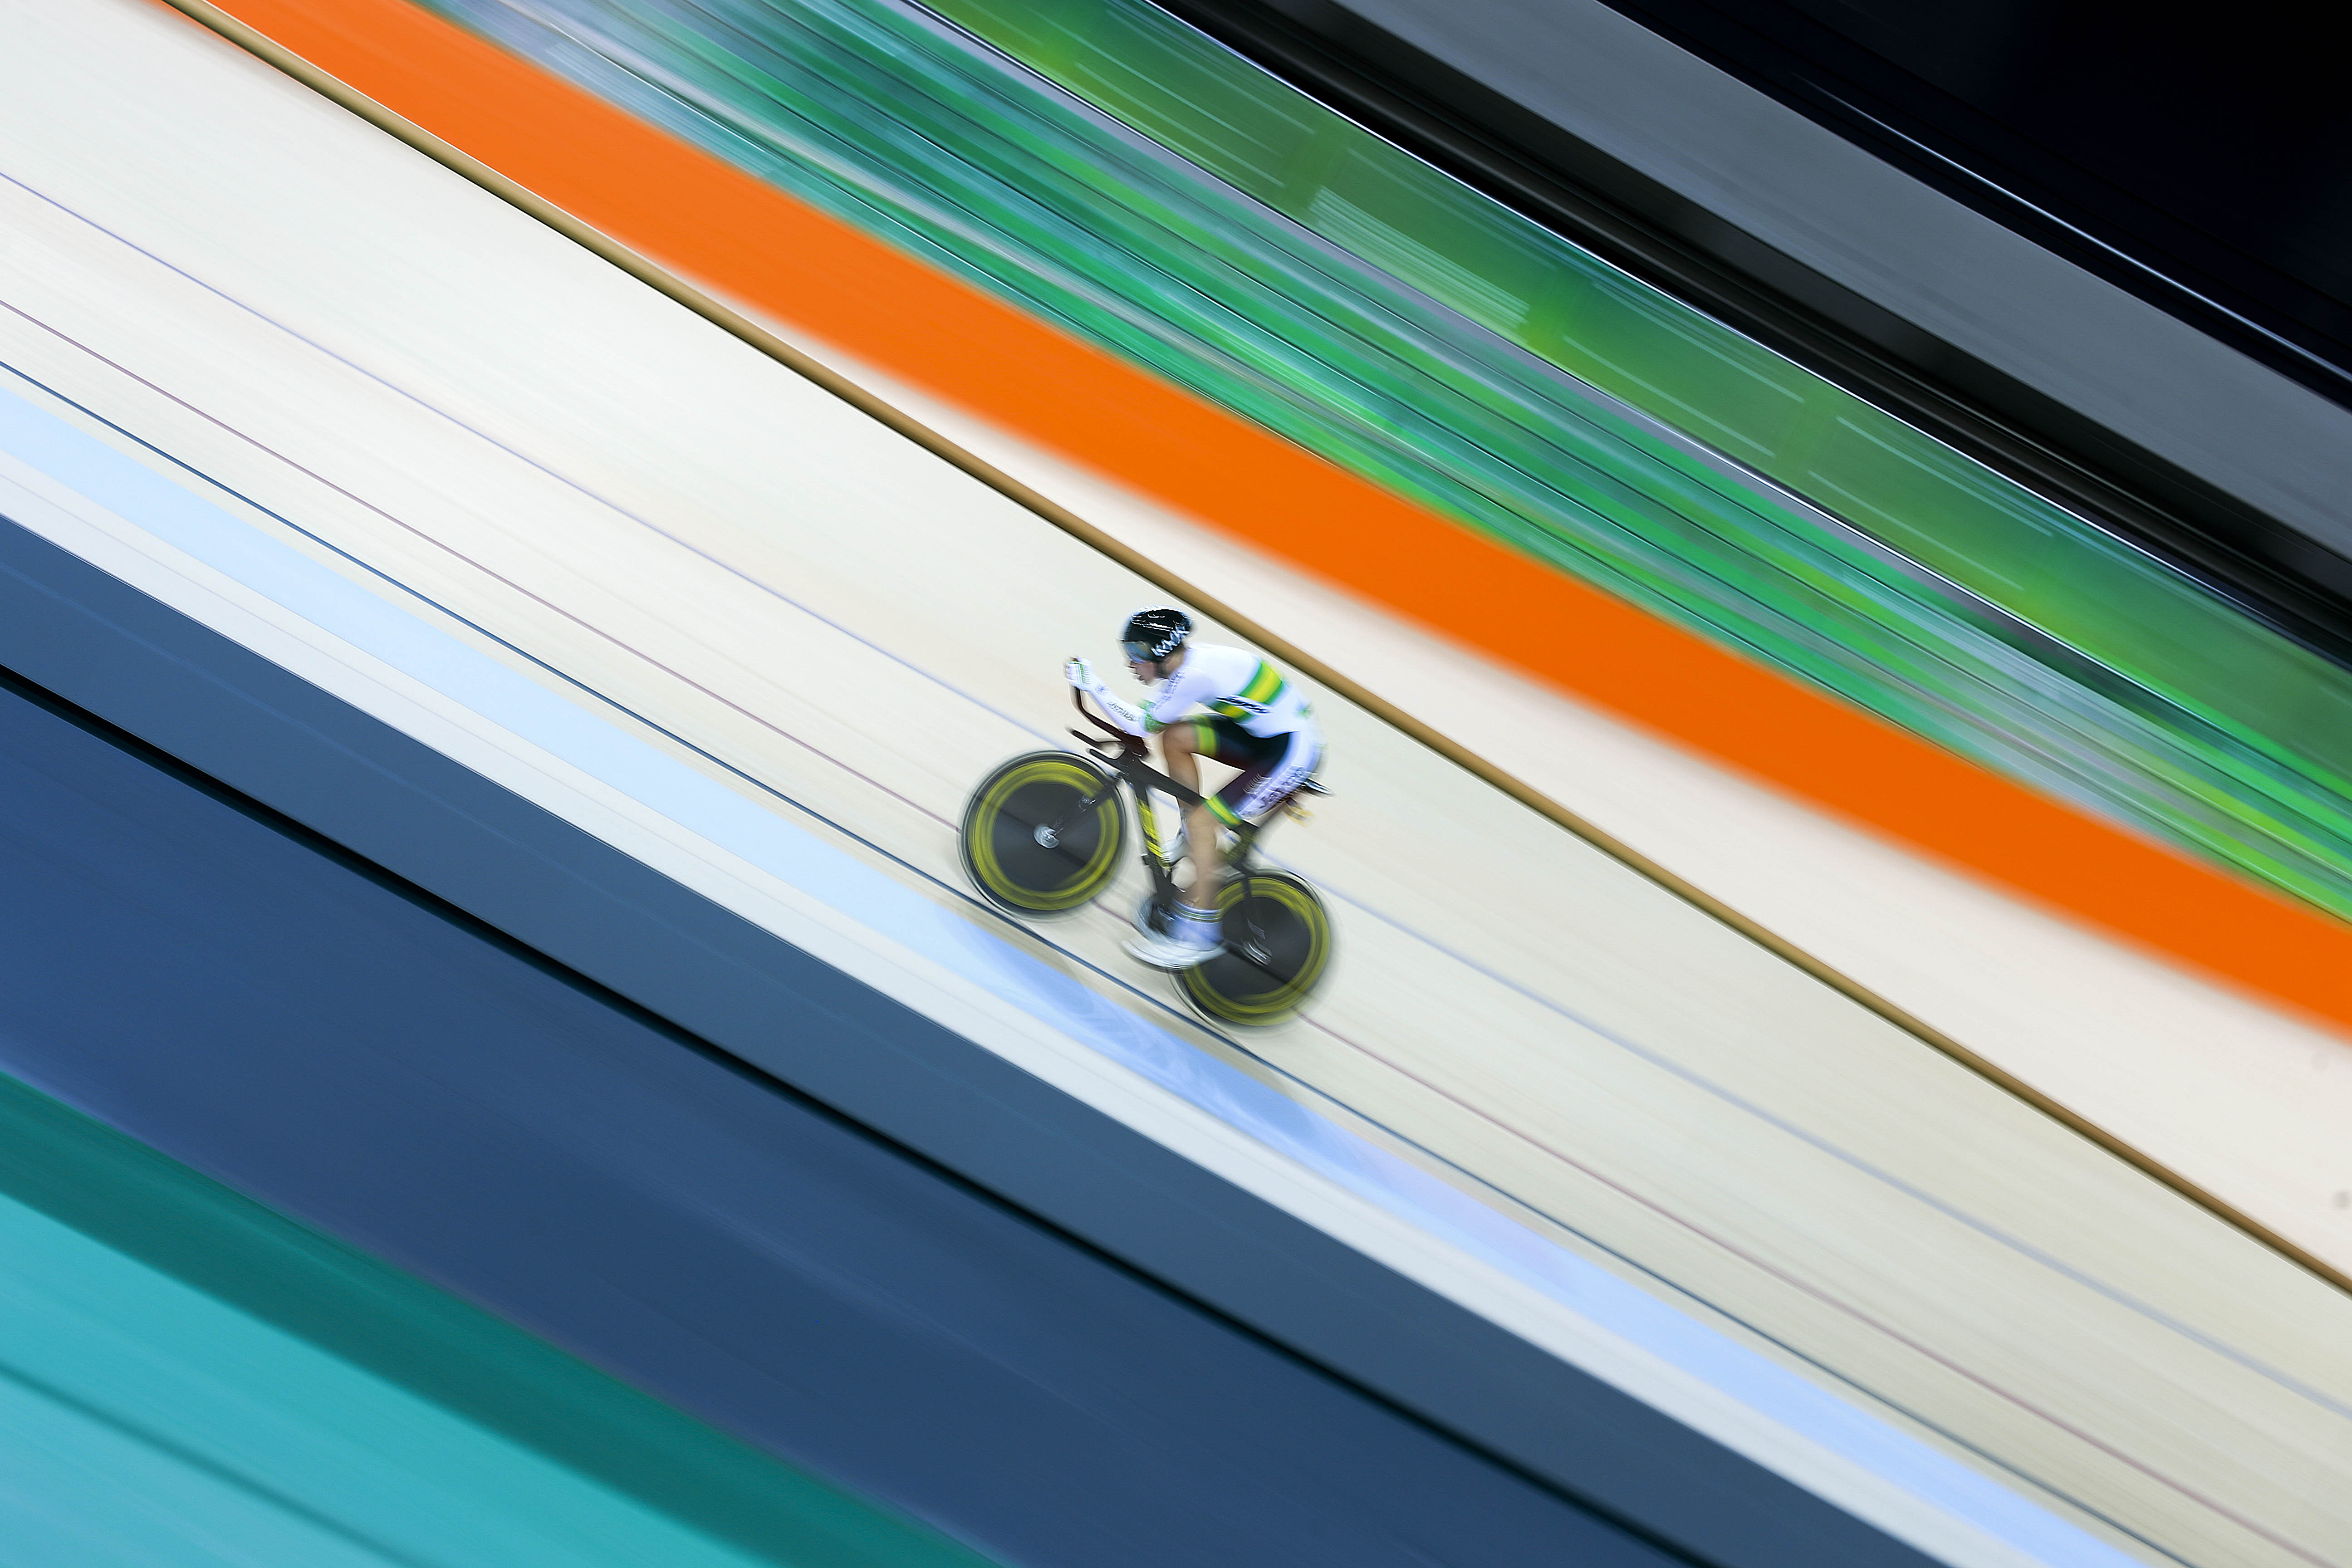 FileOlympic Velodrome In Barra Olympic Park Tested The Track 250616 5